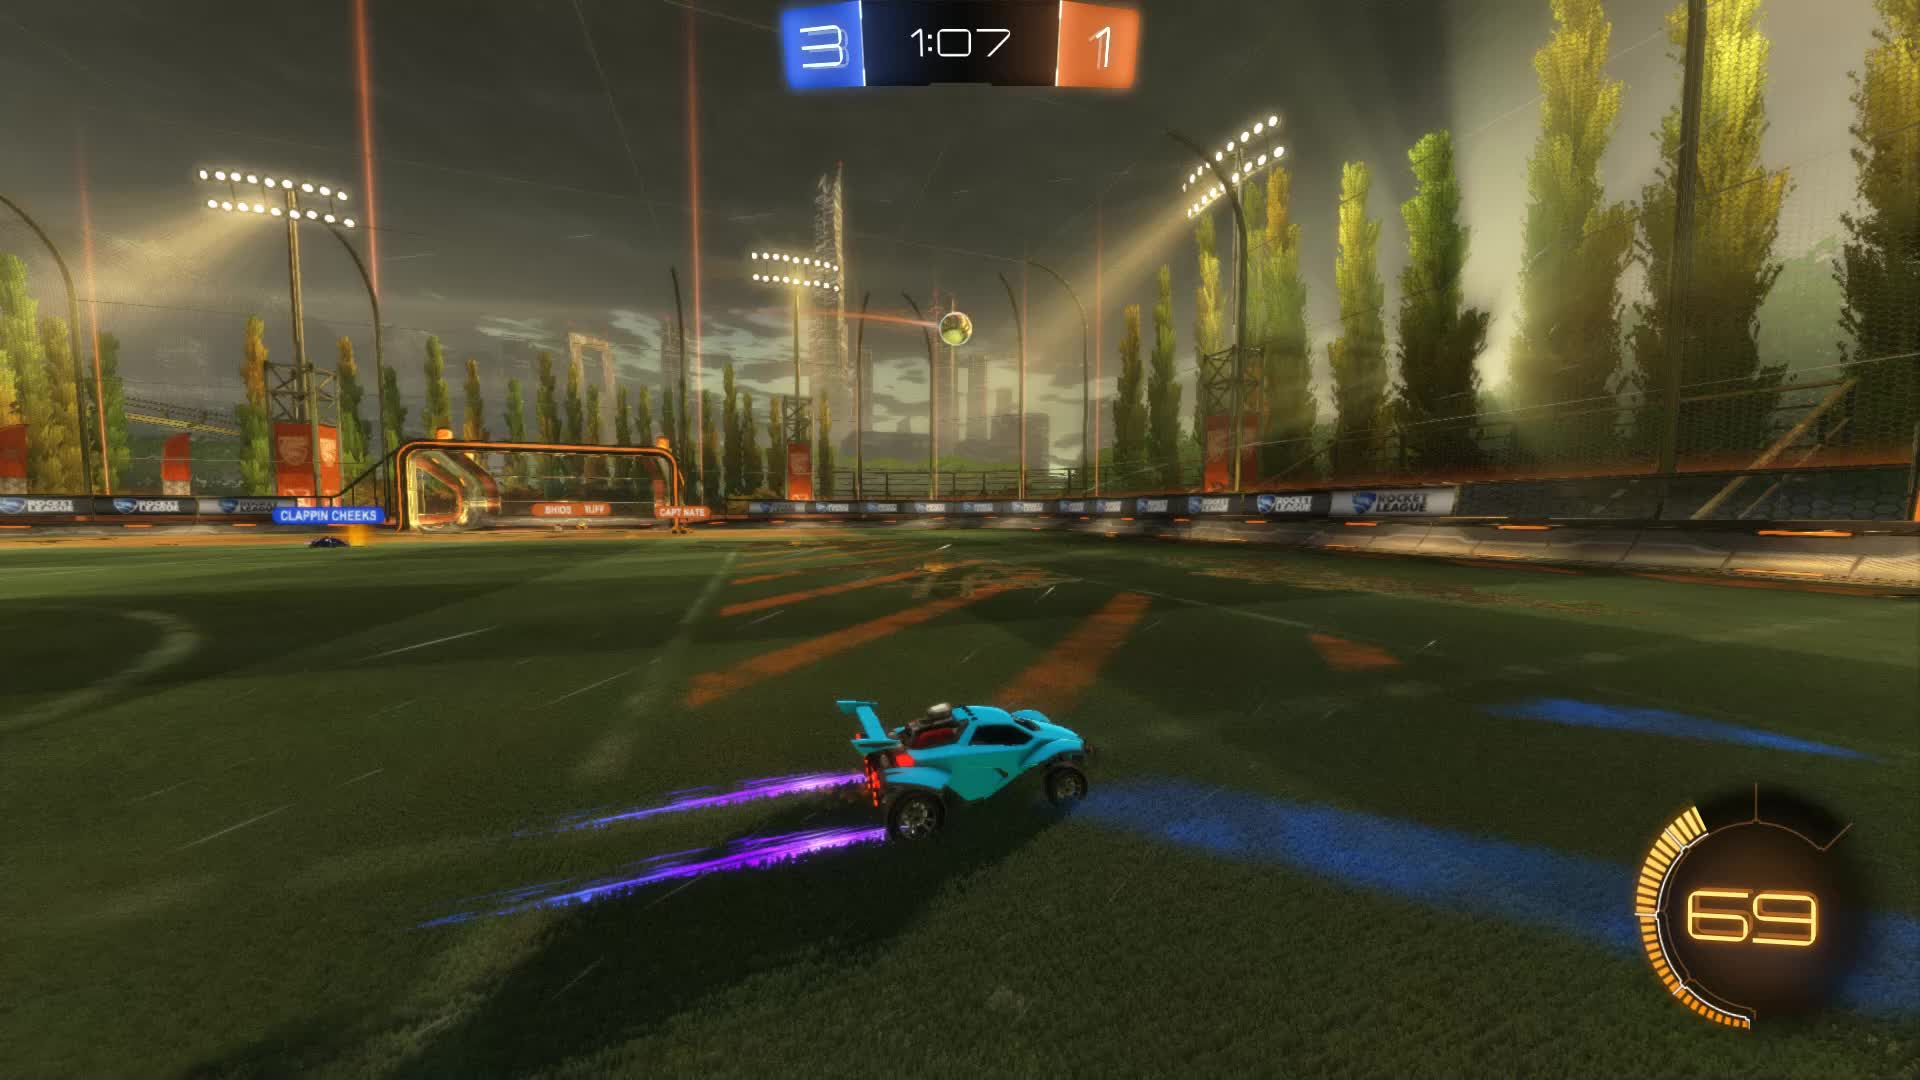 Gif Your Game, GifYourGame, Goal, Rocket League, RocketLeague, Scooby-doo, Goal 5: Scooby-doo GIFs